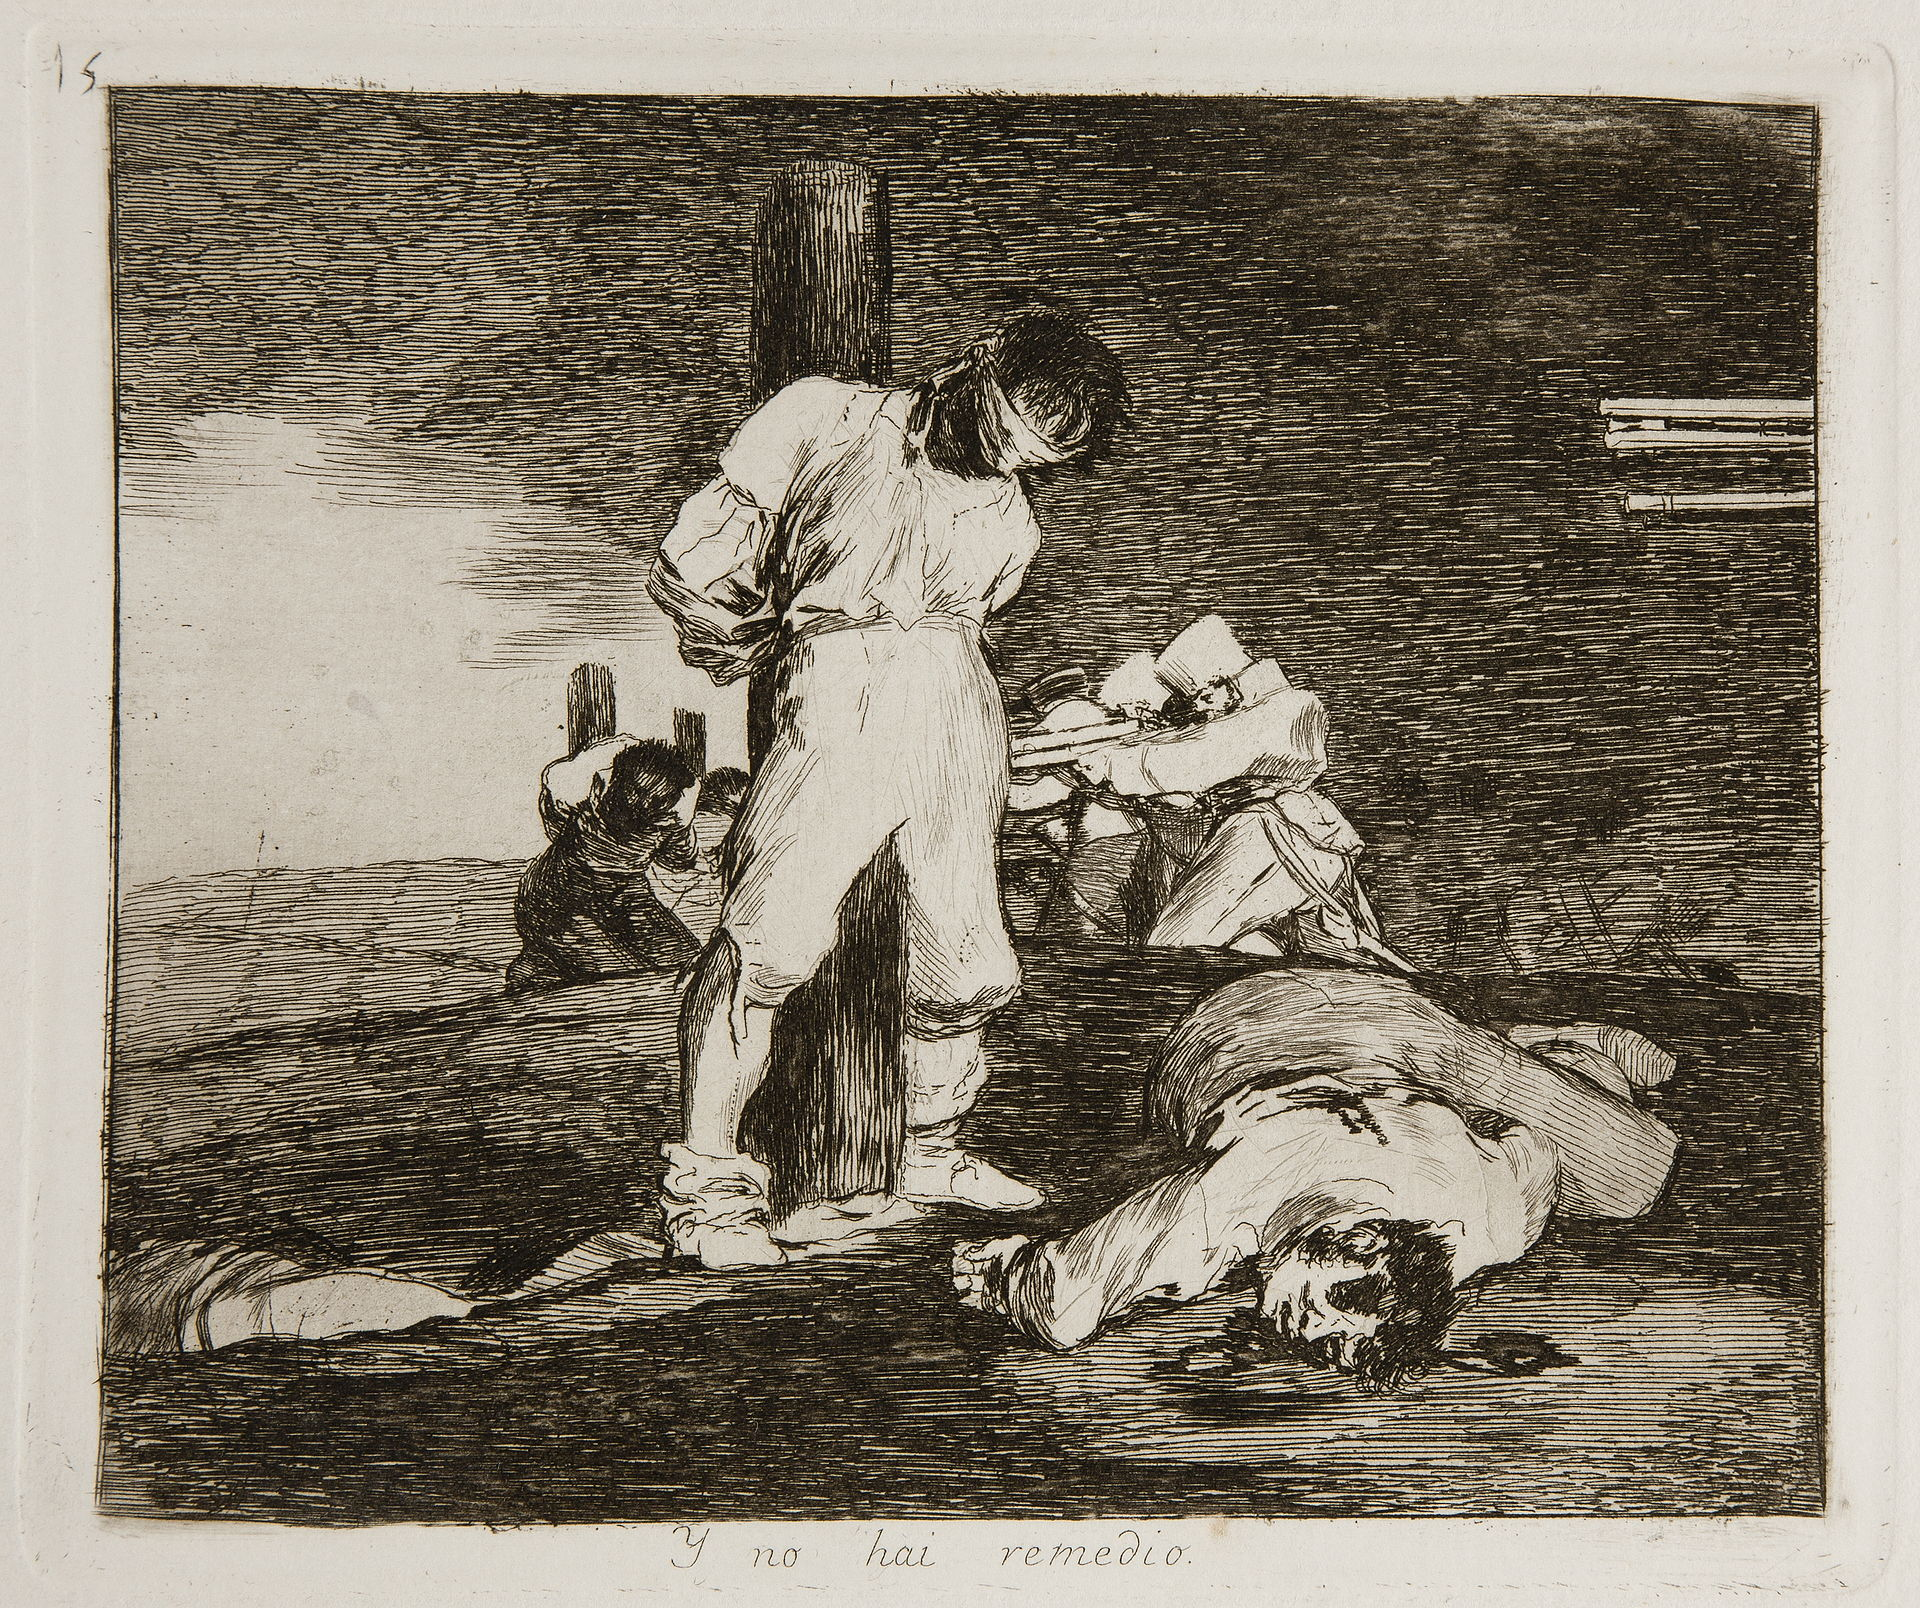 goya's 'the disasters of war' criticized was and the bourbon rebellion